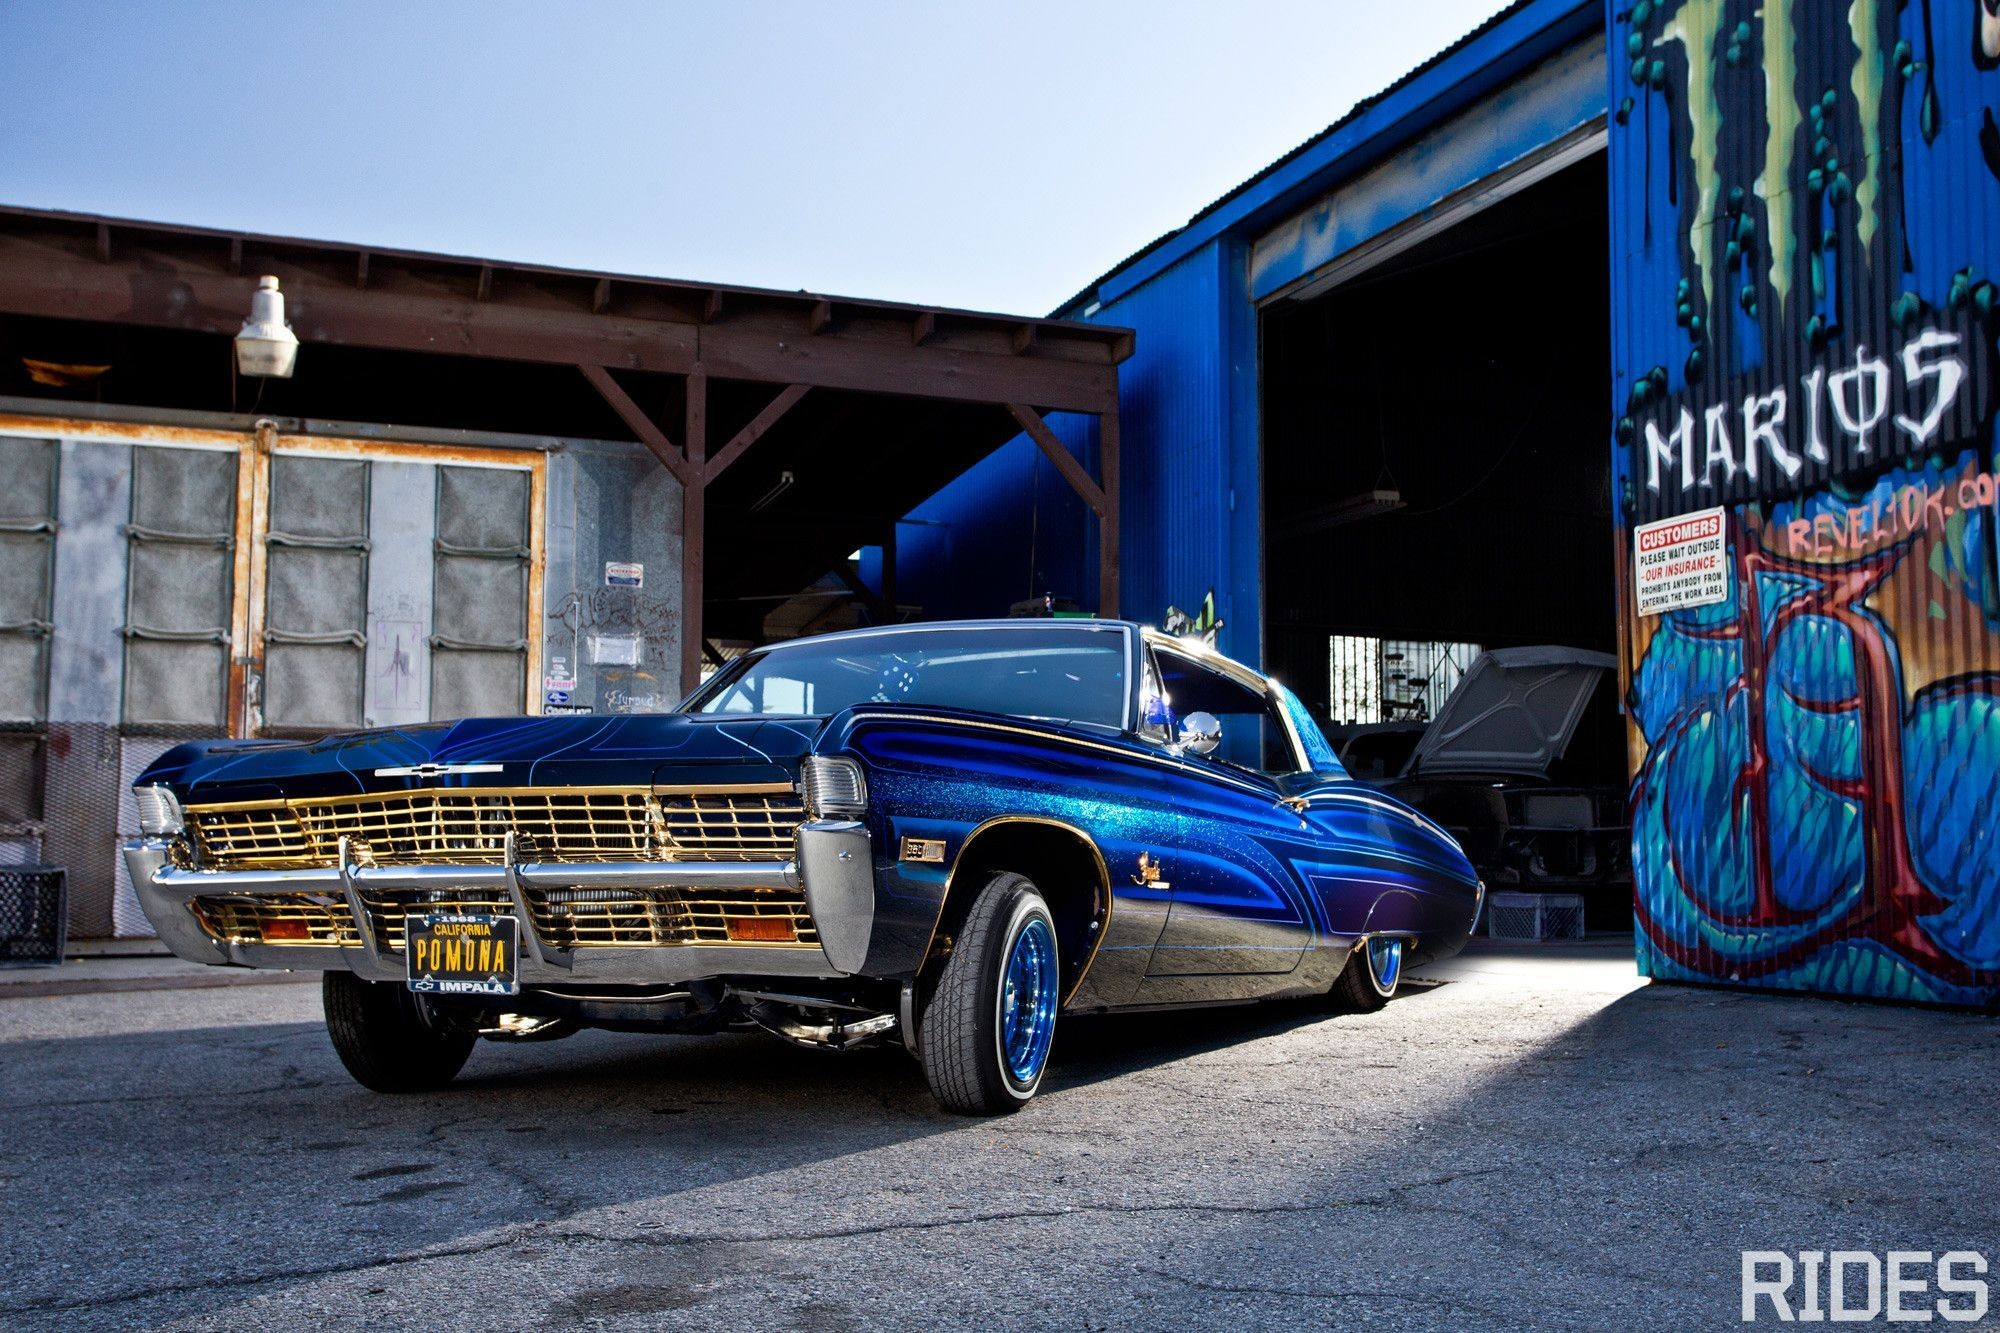 Res: 2000x1333, Awesome Lowrider Car Wallpapers Free Hd Widescreen Cave Of Iphone